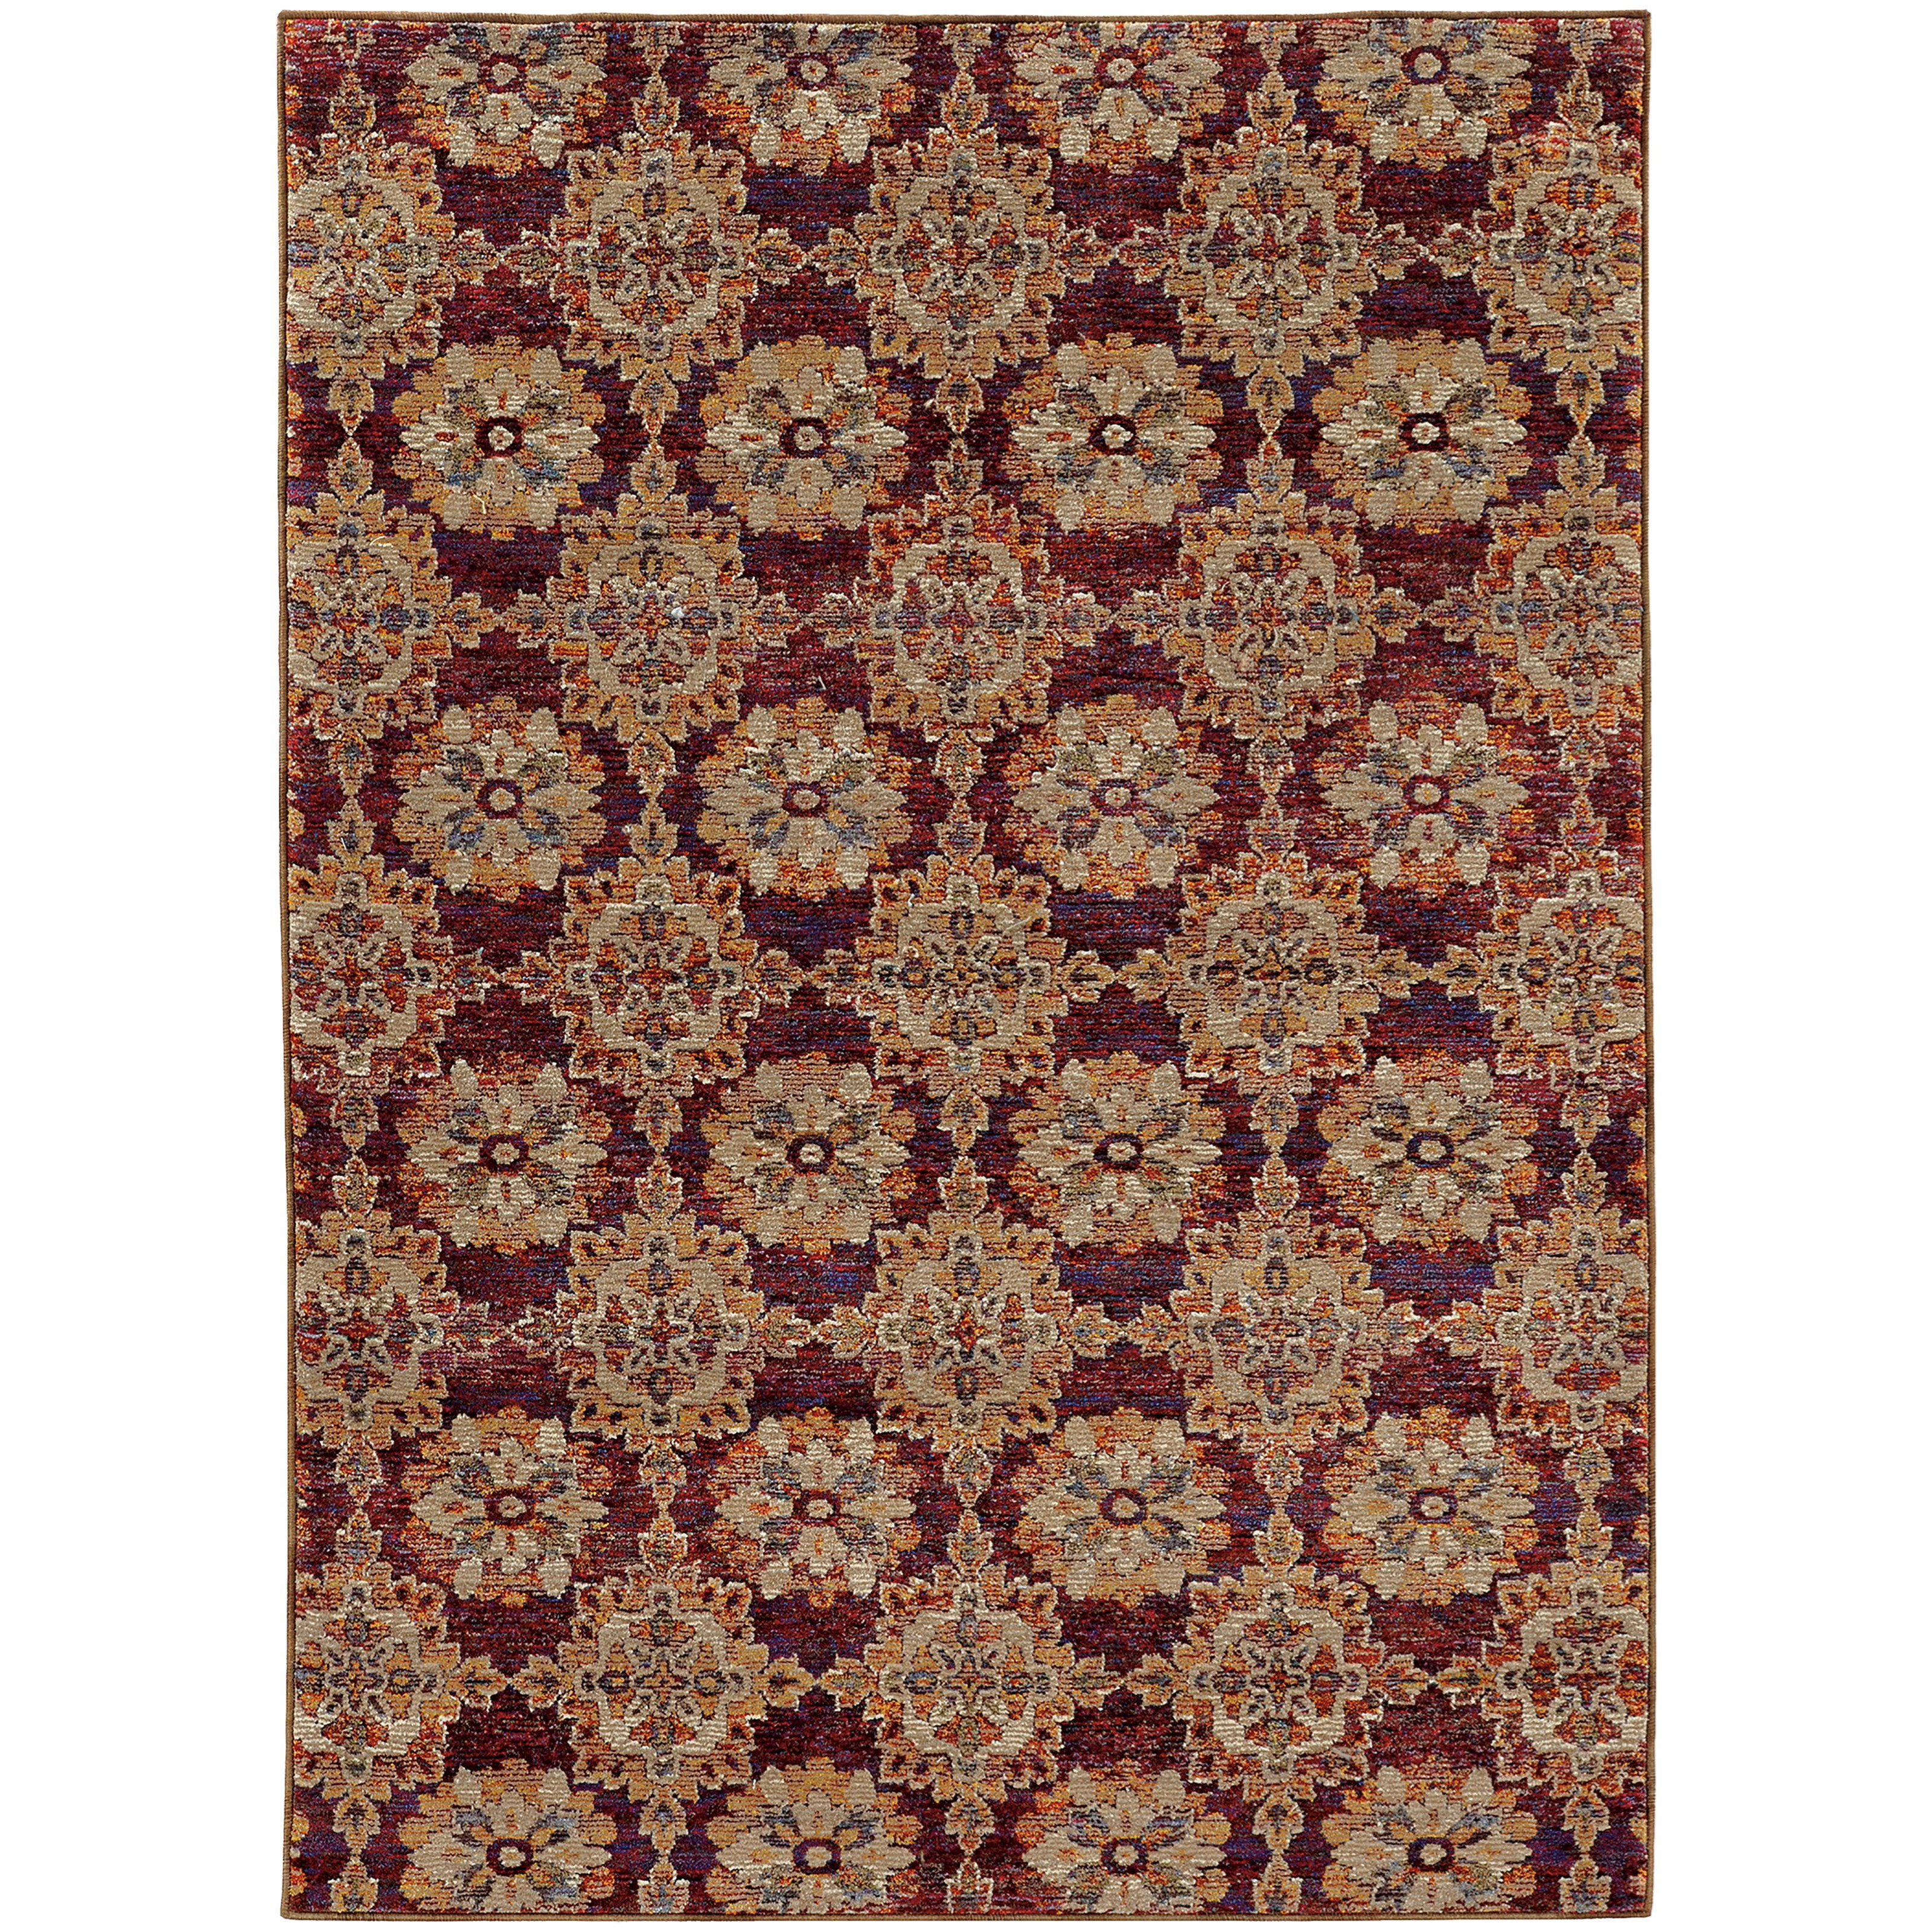 """Andorra 1'10"""" X  3' 2"""" Casual Red/ Gold Rectangle Ru by Oriental Weavers at Steger's Furniture"""